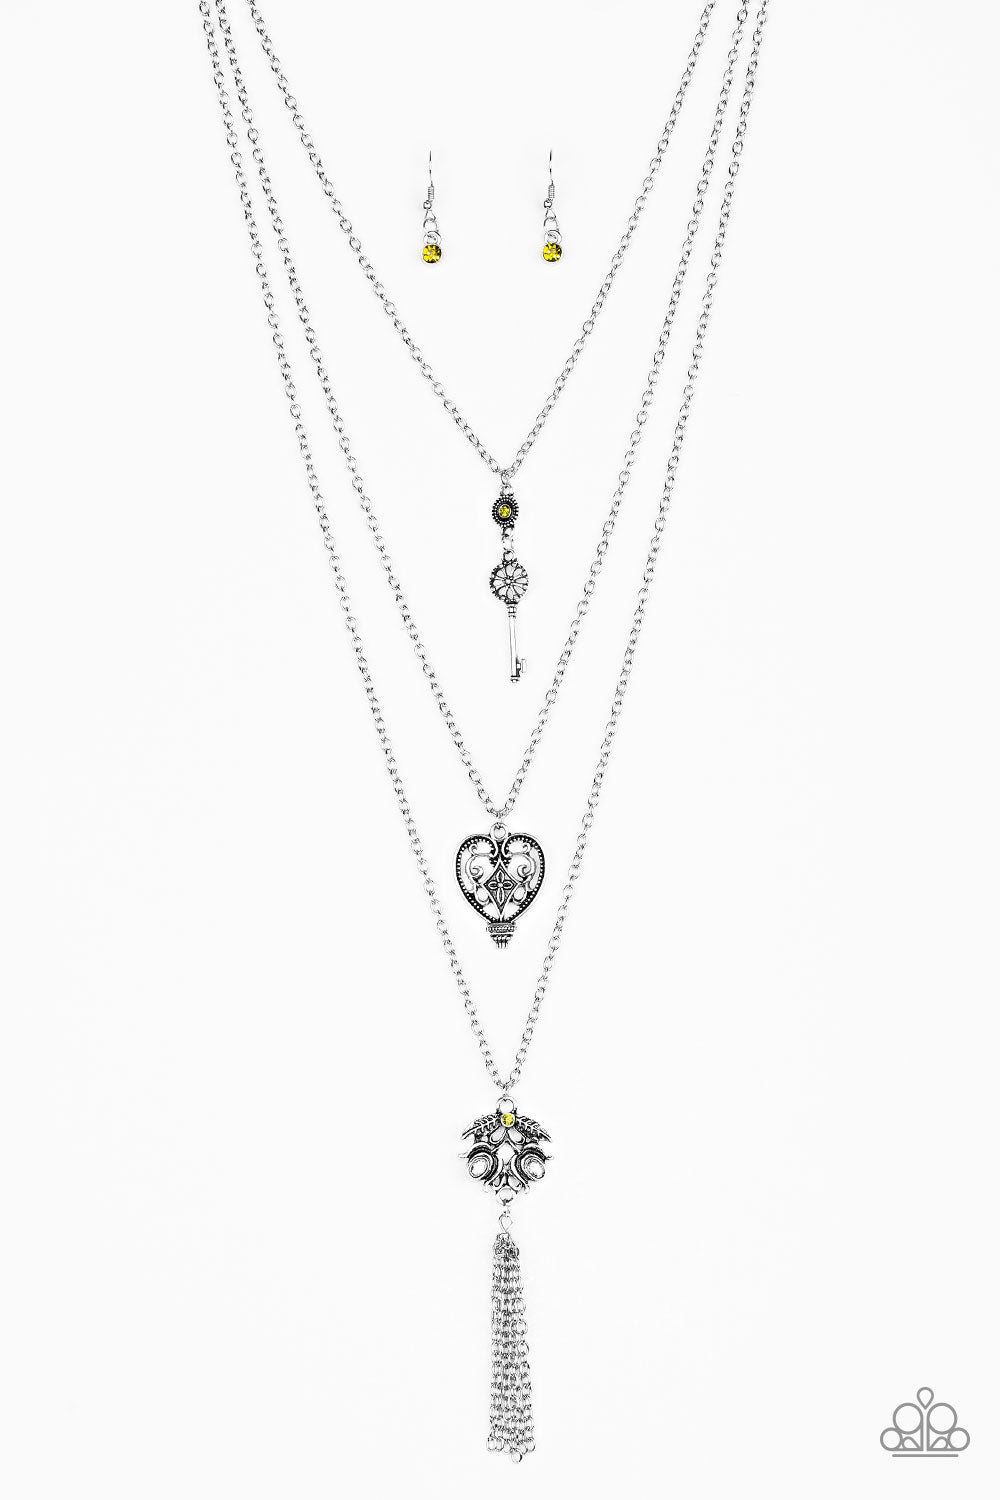 Paparazzi Accessories - Love Opens All Doors - Green Necklace and Earring Set - Necklaces